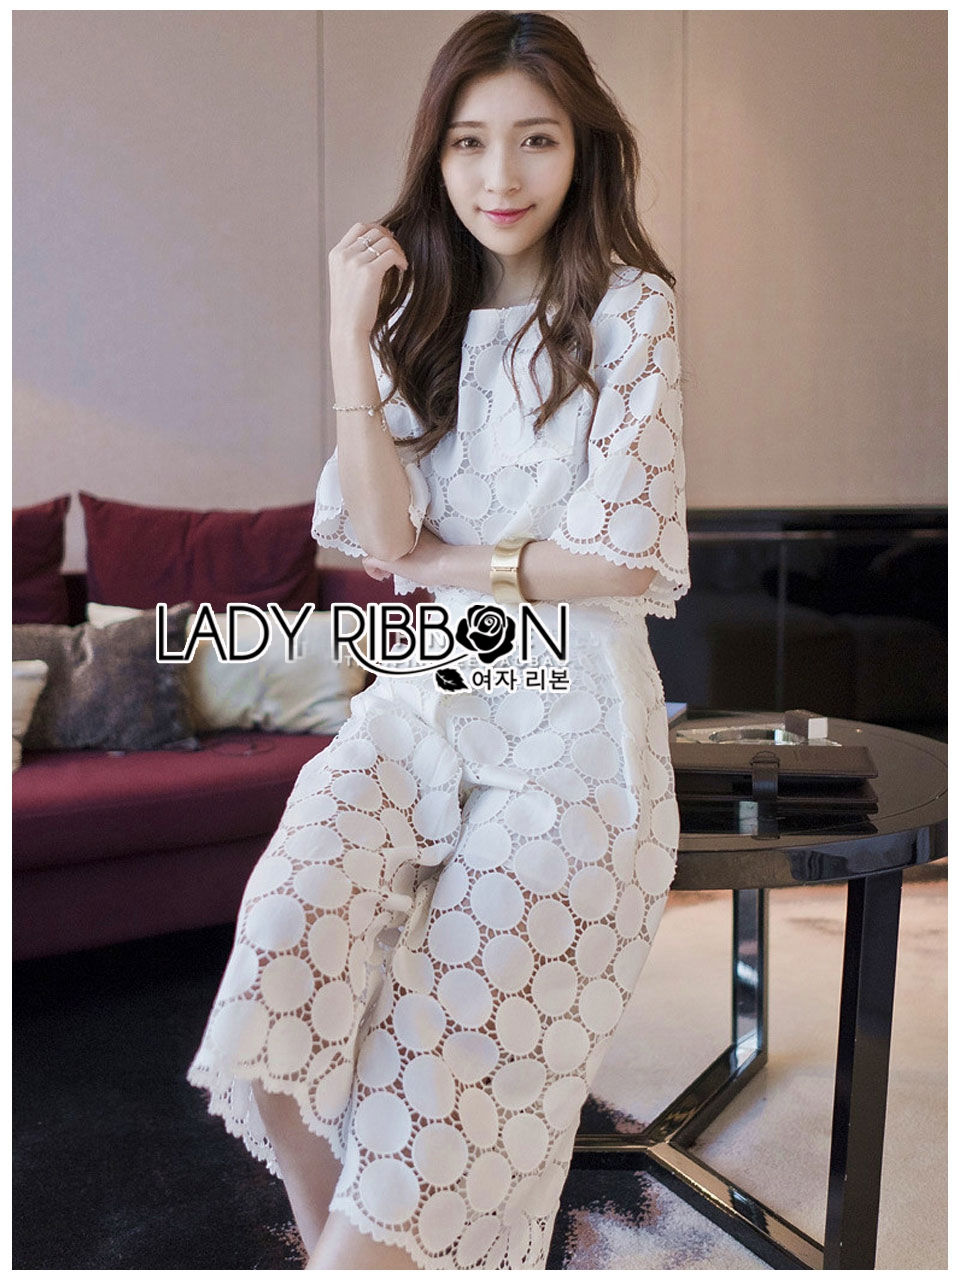 Ariana Round n' Round Cotton Embroidered Top and Pants Set